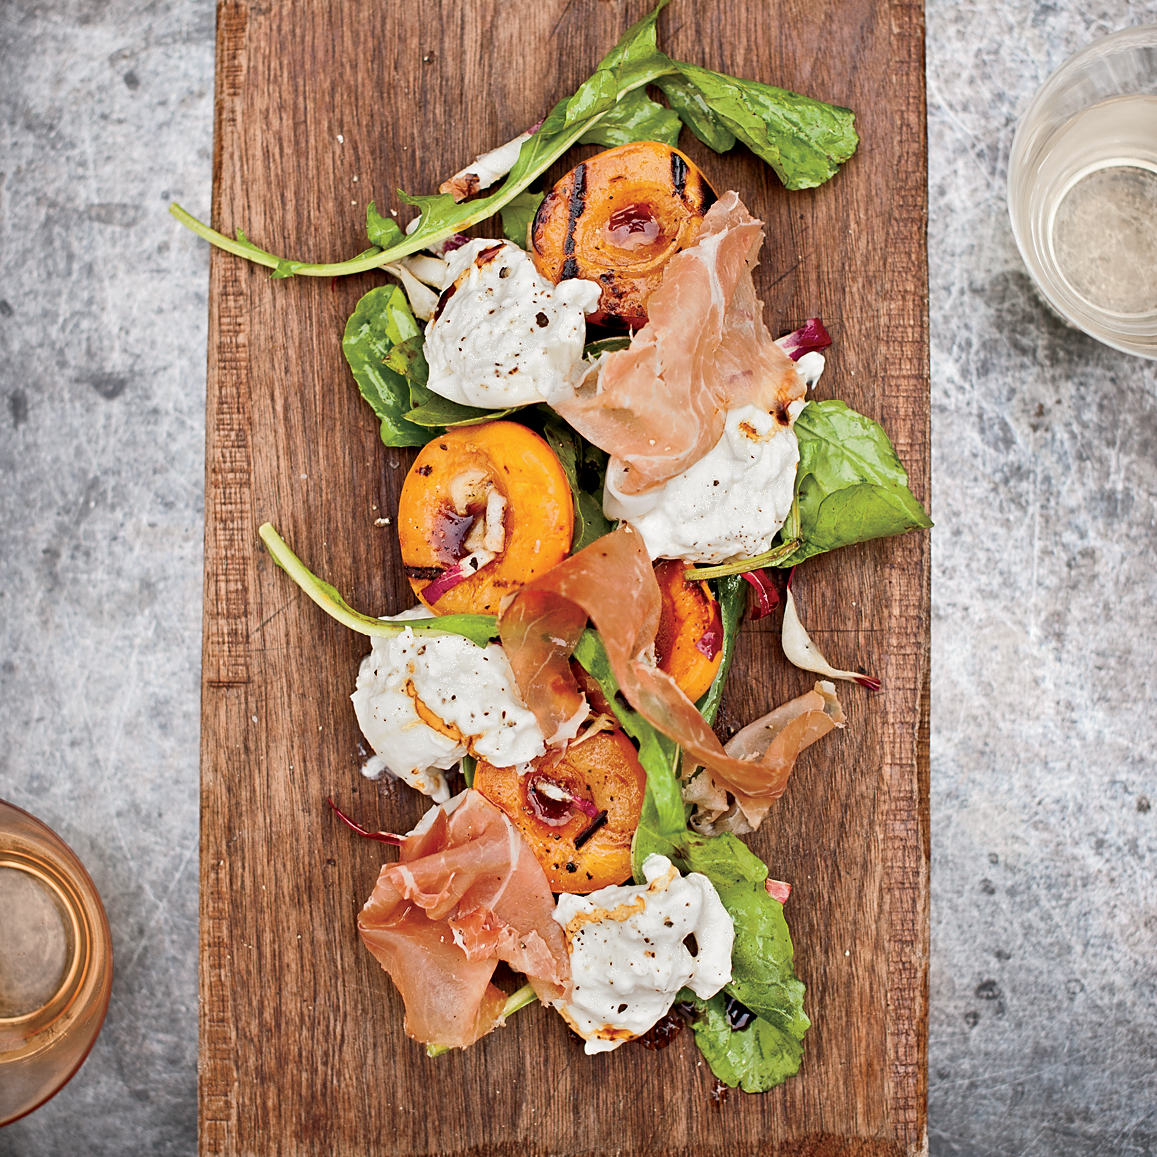 Spring Recipes: Grilled Apricots with Burrata, Country Ham and Arugula